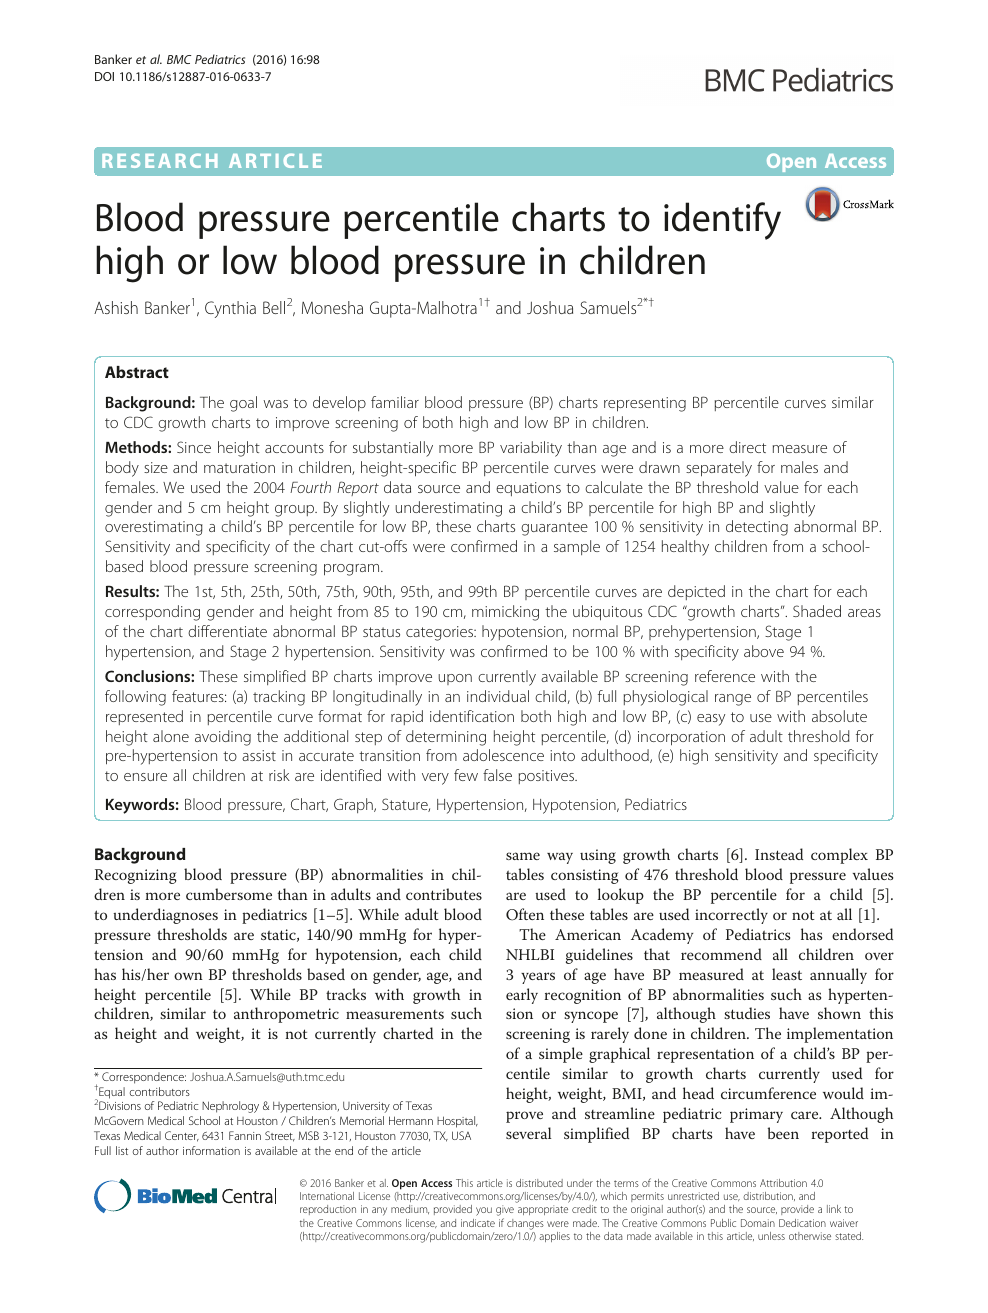 Blood Pressure Percentile Charts To Identify High Or Low Blood Pressure In Children Topic Of Research Paper In Medical Engineering Download Scholarly Article Pdf And Read For Free On Cyberleninka Open